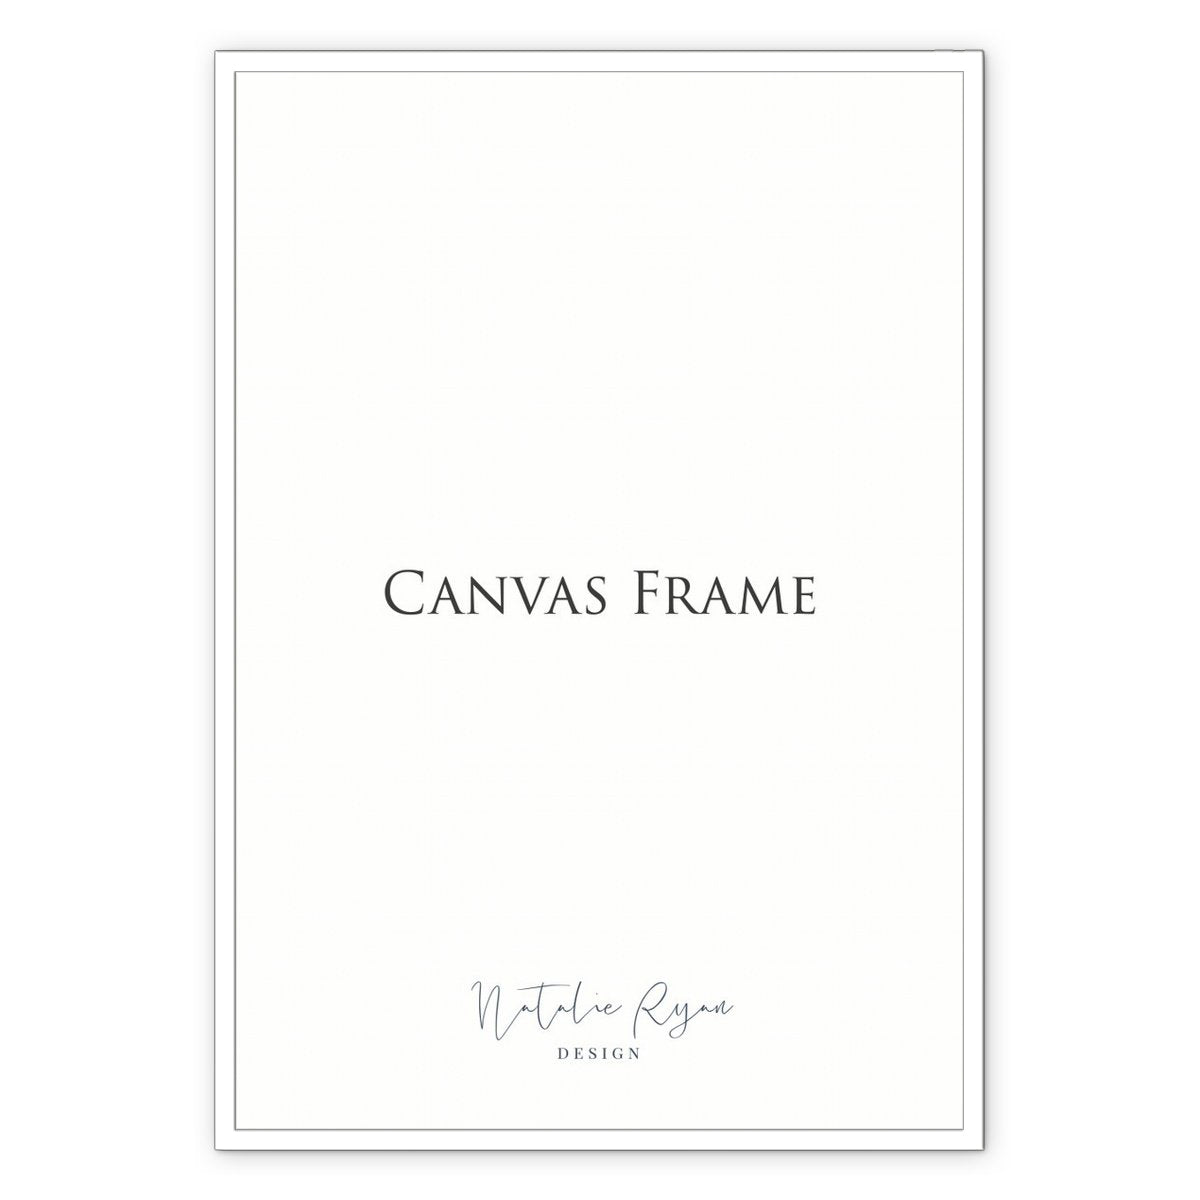 Framed Canvas Print, 8x10 in / 20x25 cm, White Frame